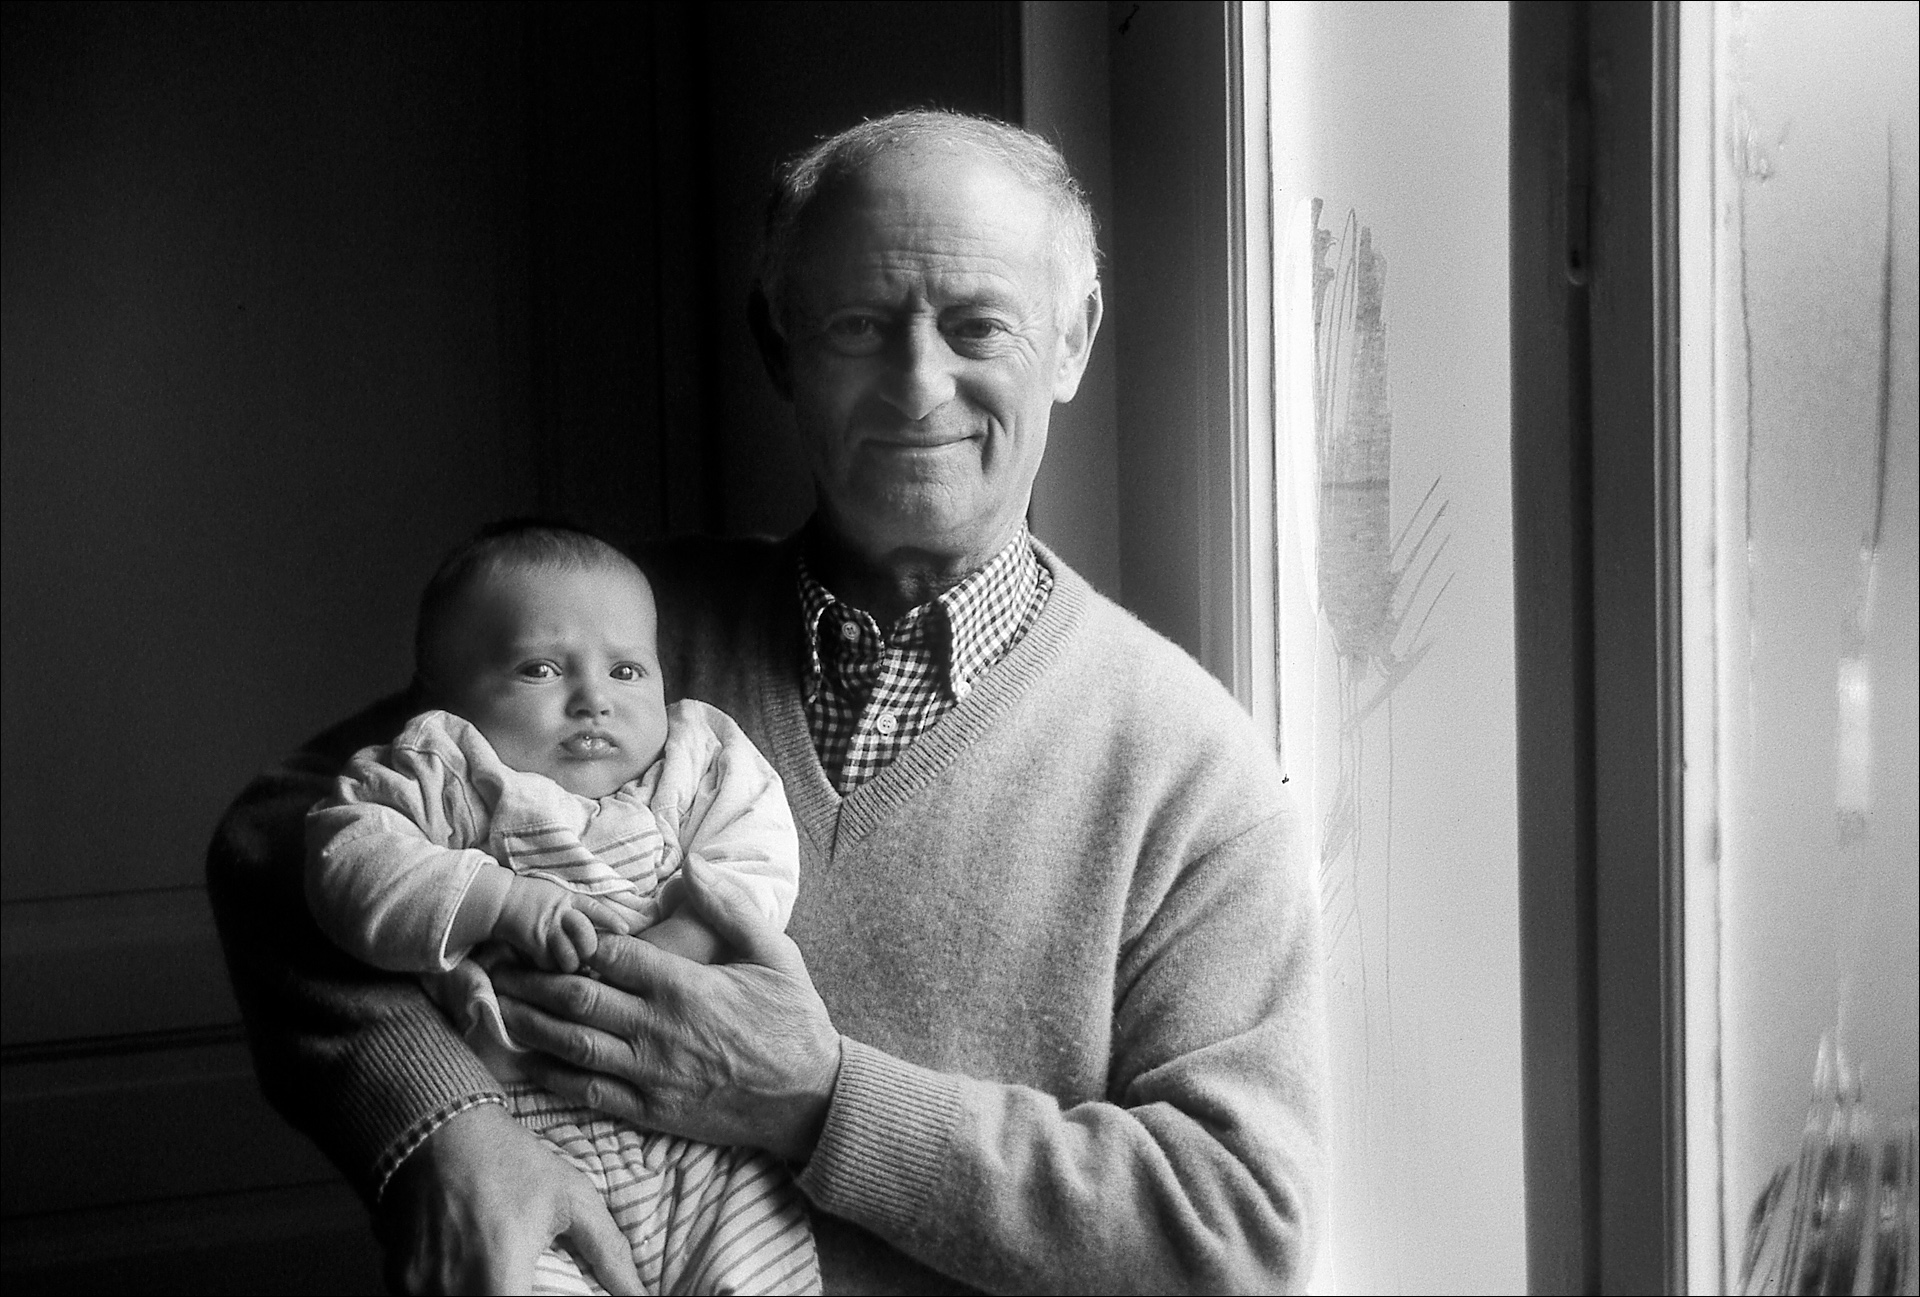 Ugo Bonani (child) Grand Father Ignace Enten, Valenciennes, France, 2002